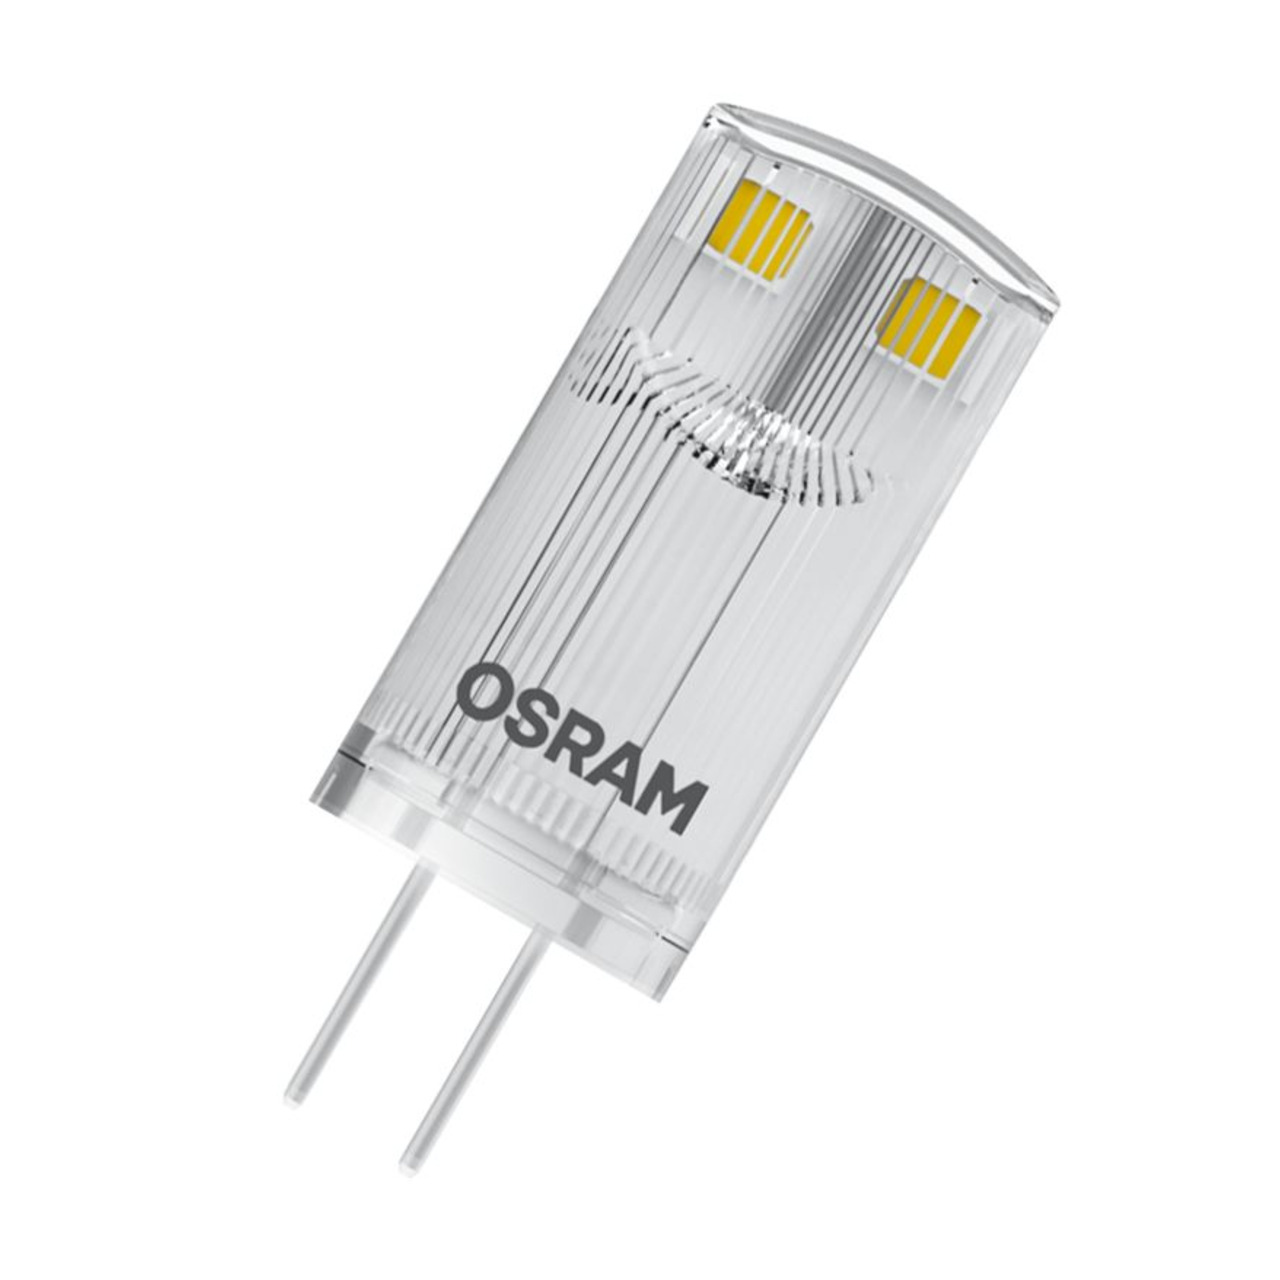 OSRAM 3er Set 0-9-W-LED-Lampe T12- G4- 100 lm- warmweiss- 12 V